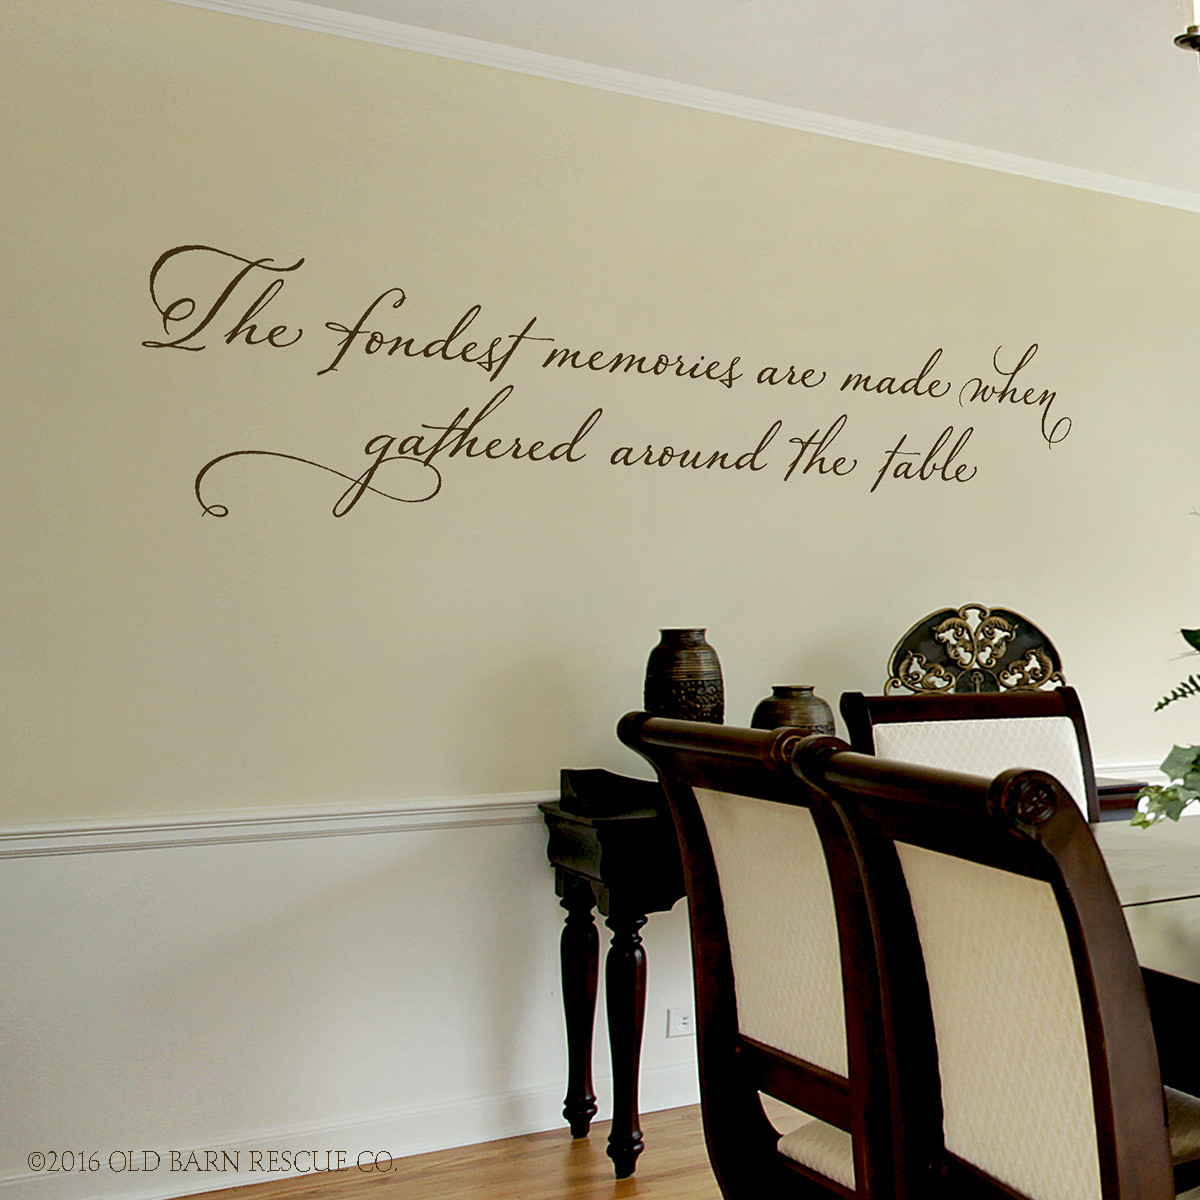 Beautiful quotes wall decal - The Fondest Memories are made